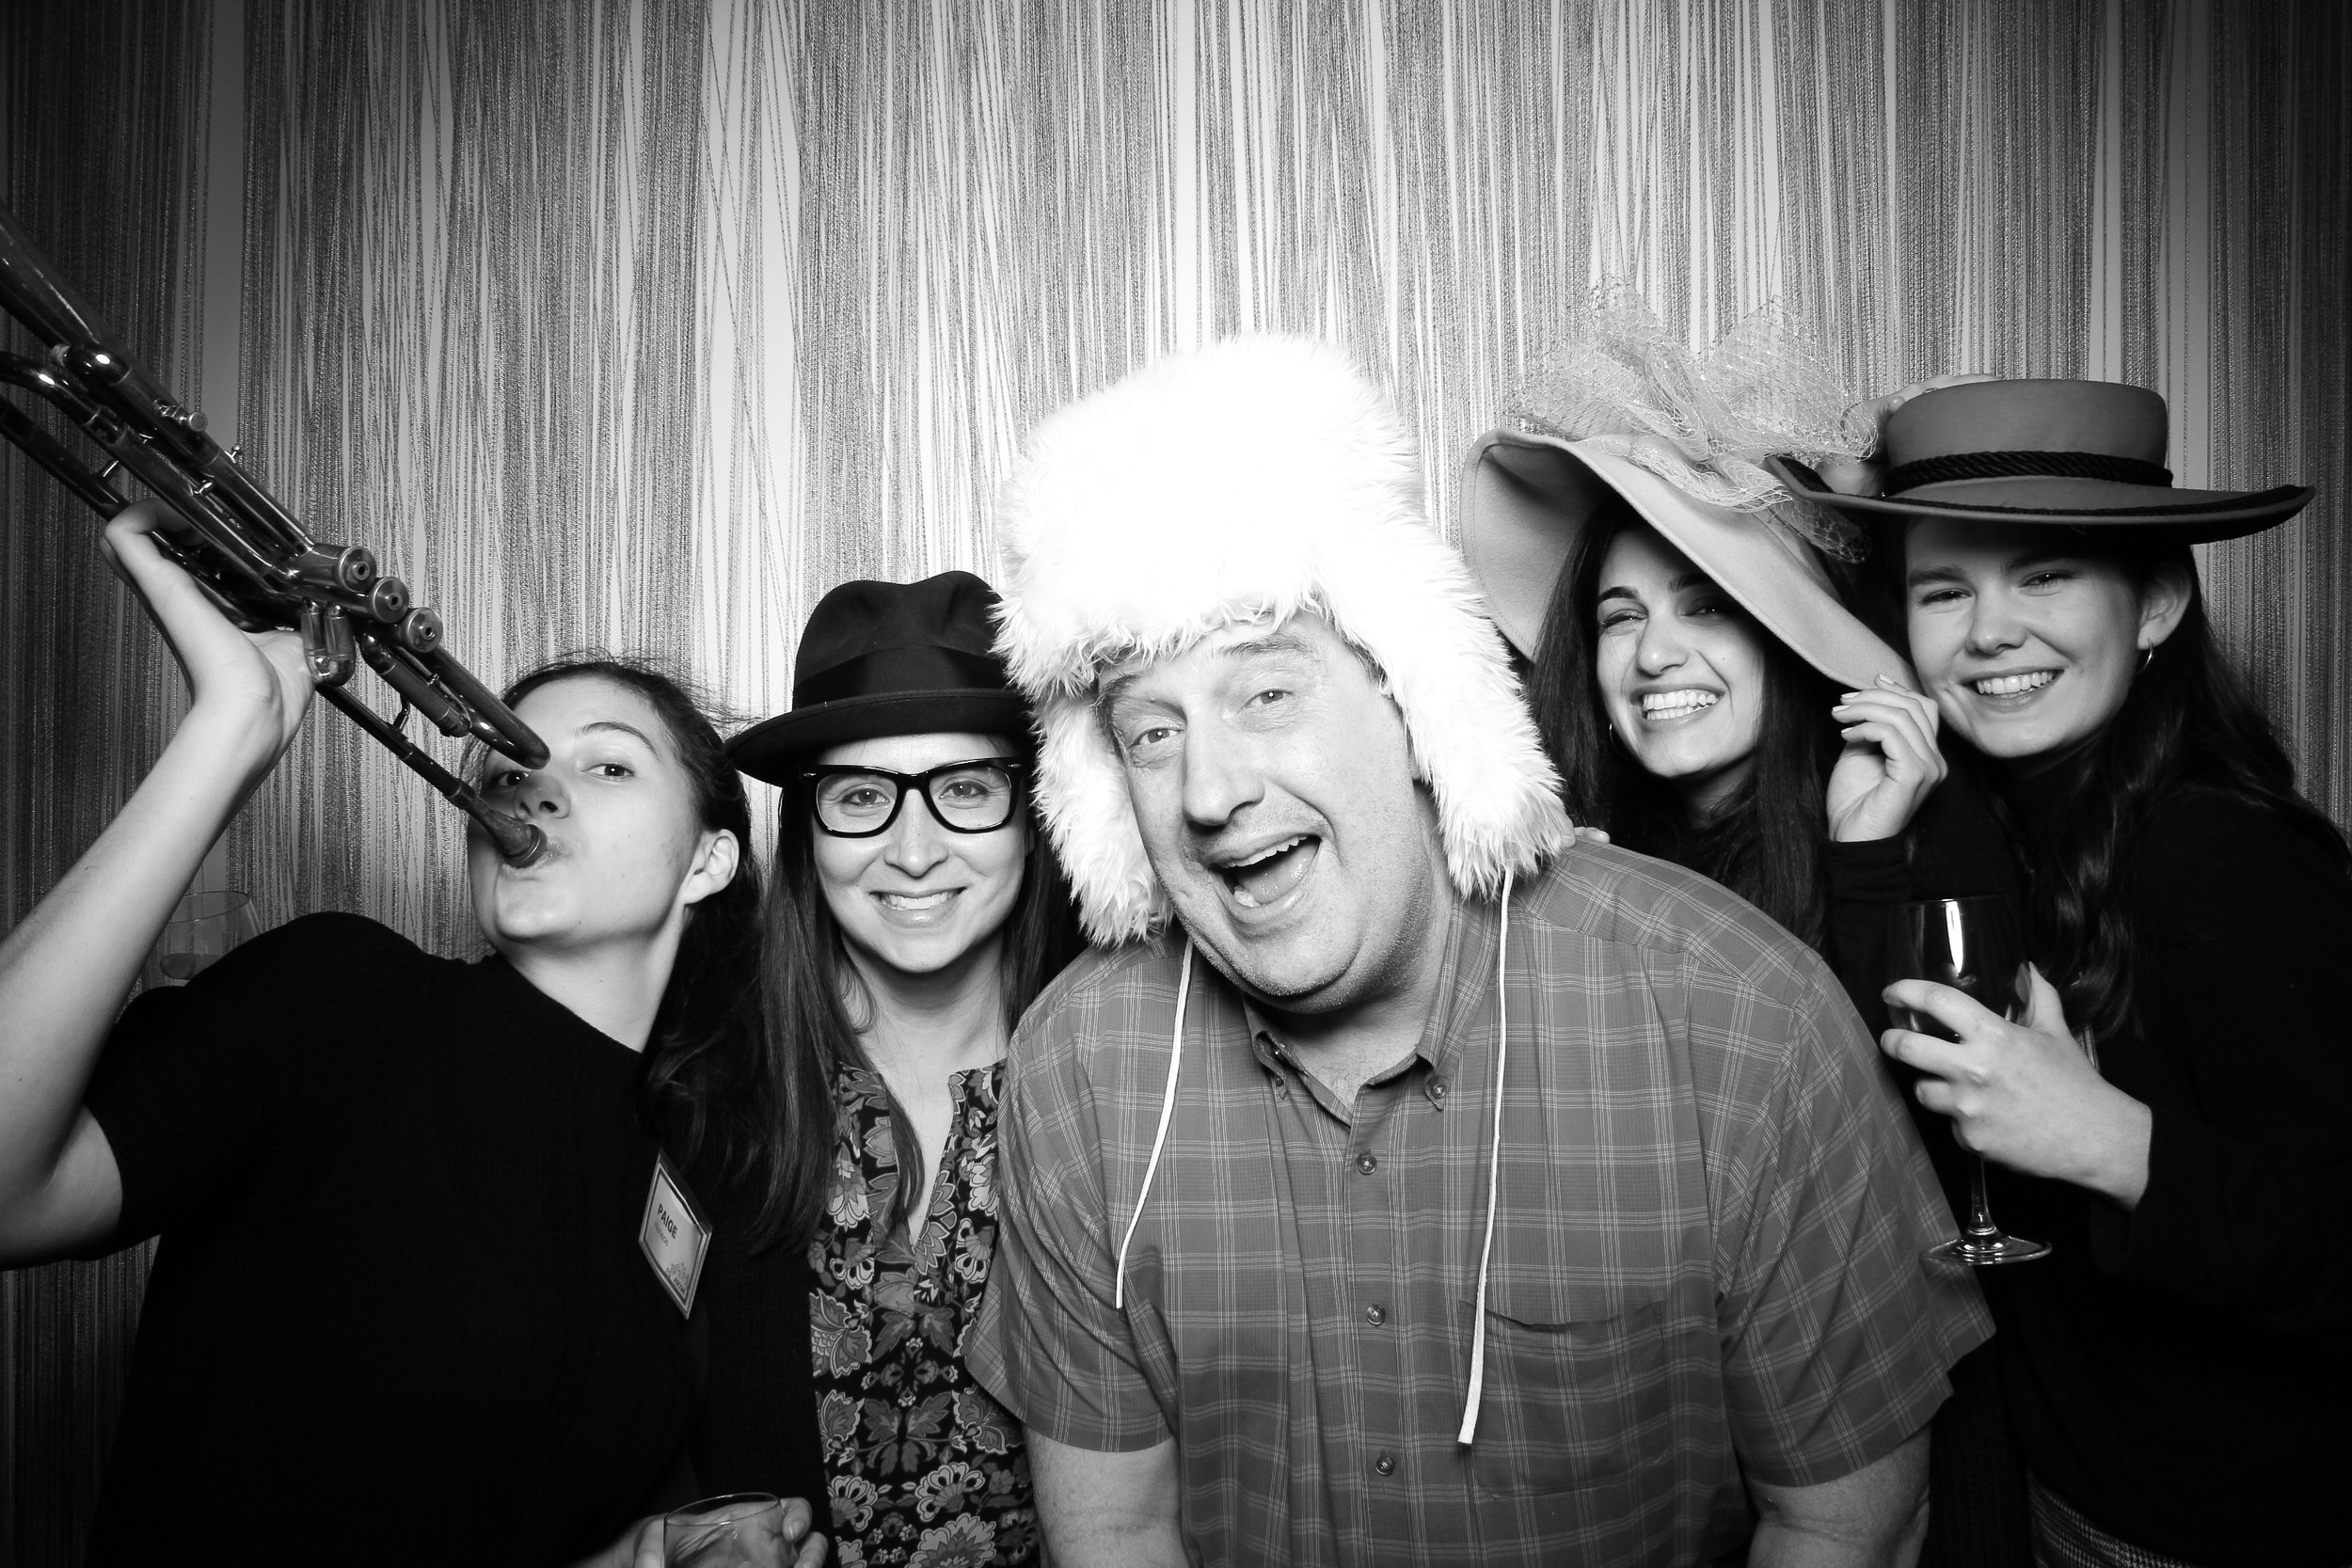 Chicago_Vintage_Photobooth_Holiday_Party_Wit_Hotel_10.jpg